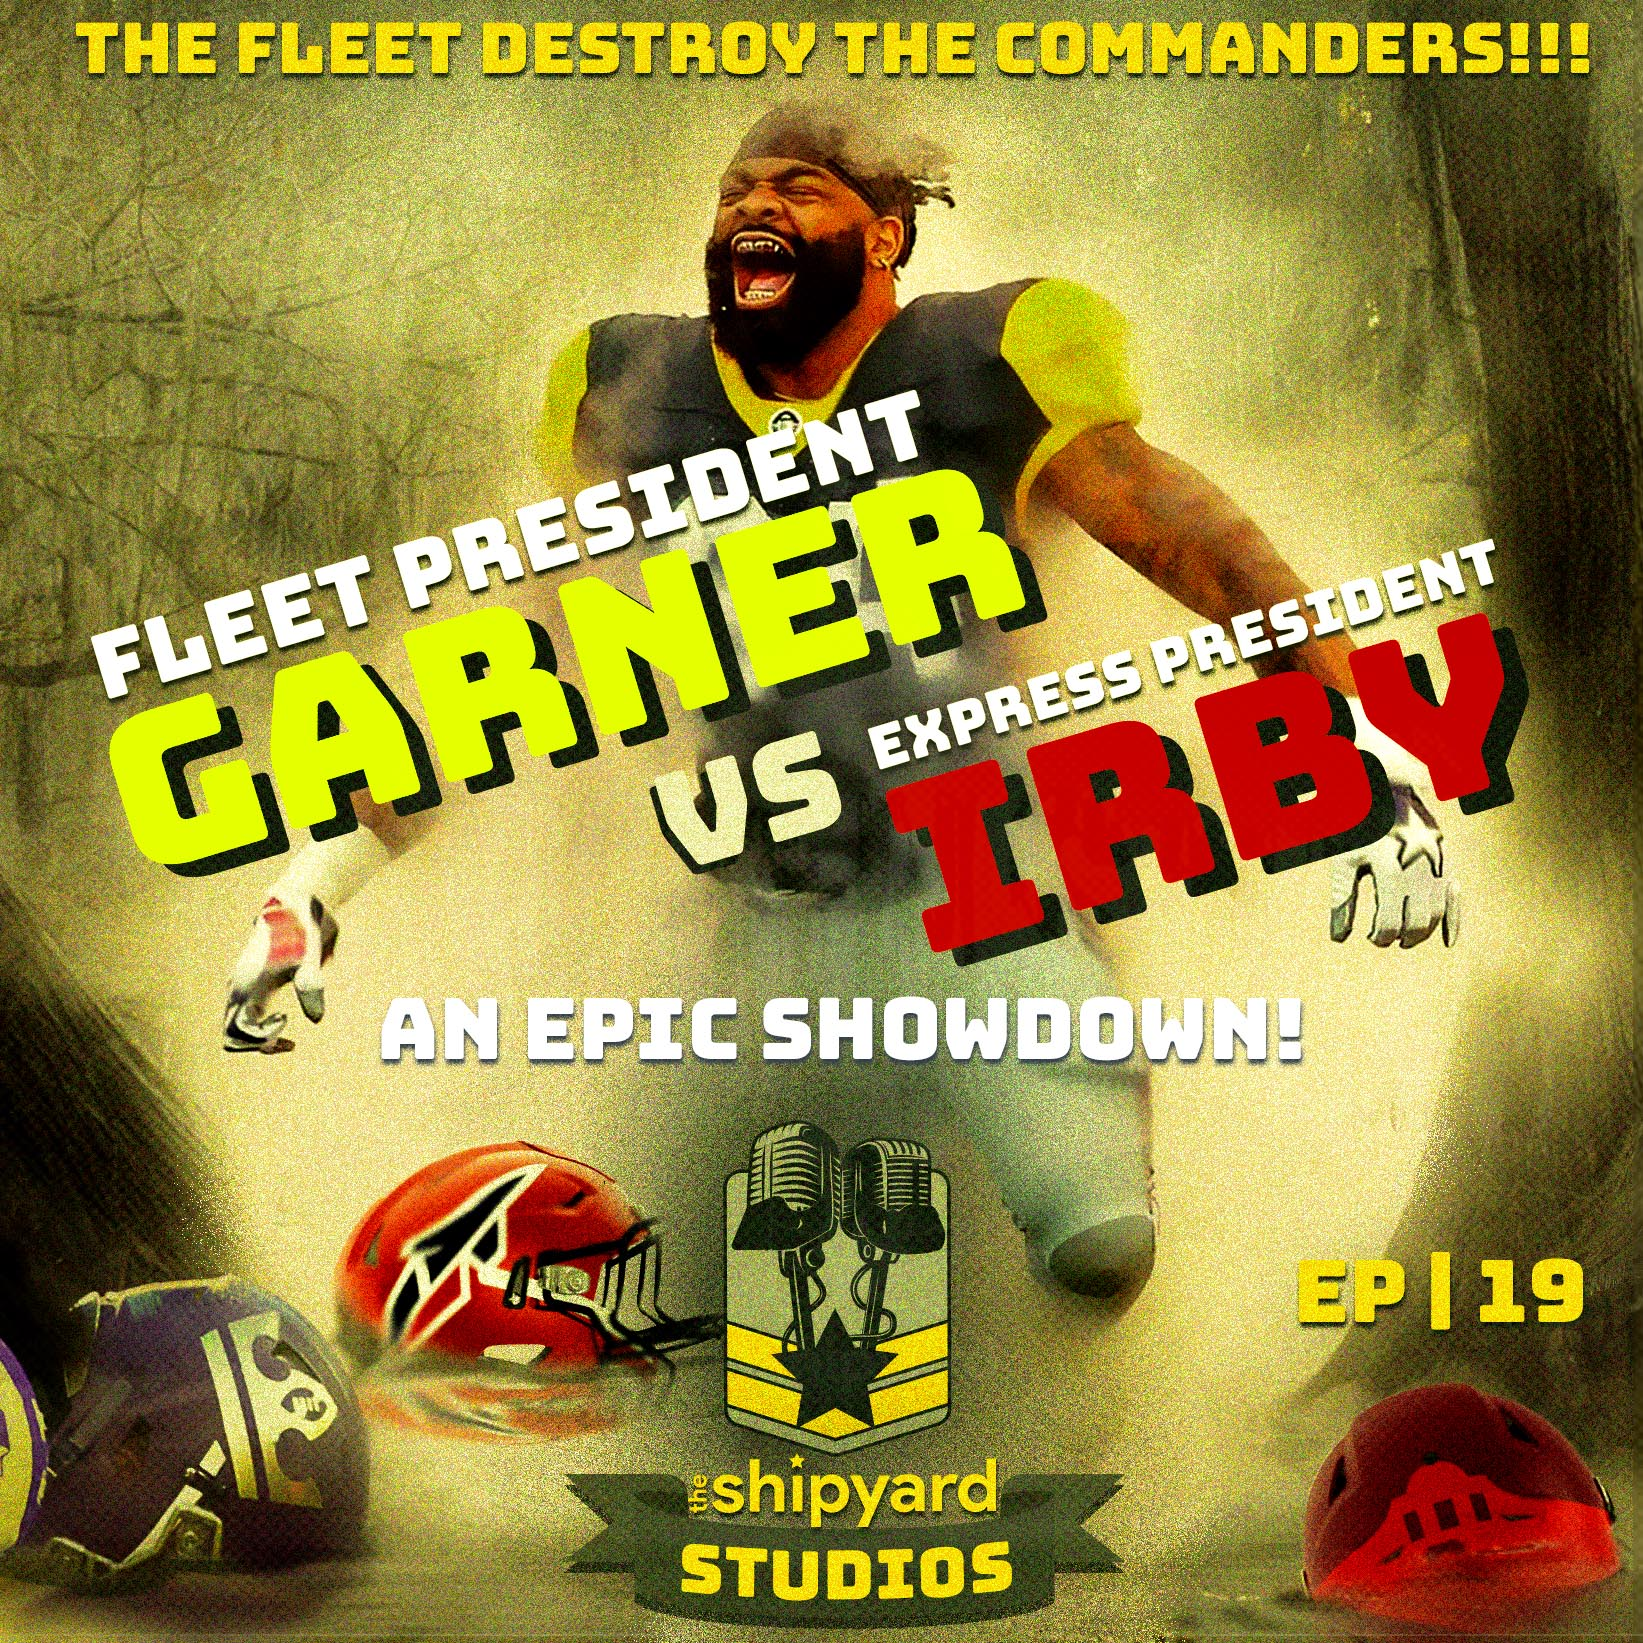 019 | Fleet President Jeff Gardner and Express President Kosha Irby THROW DOWN in an Epic Week 4 Preview